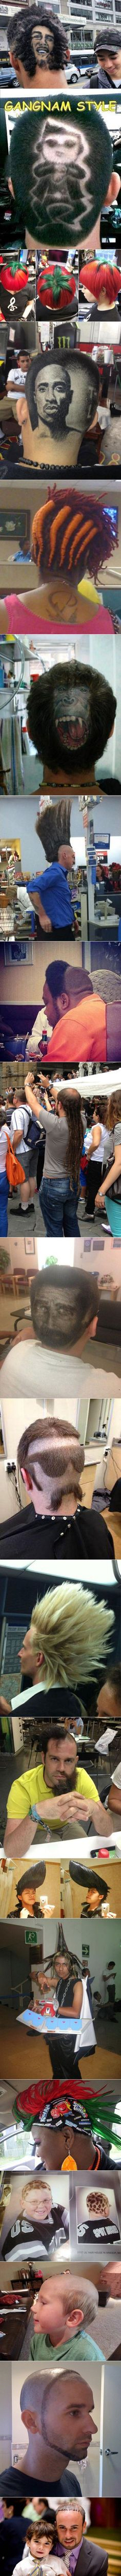 20 Cool and Strange (Yet Real) Haircuts Captured by Geeks - TechEBlog